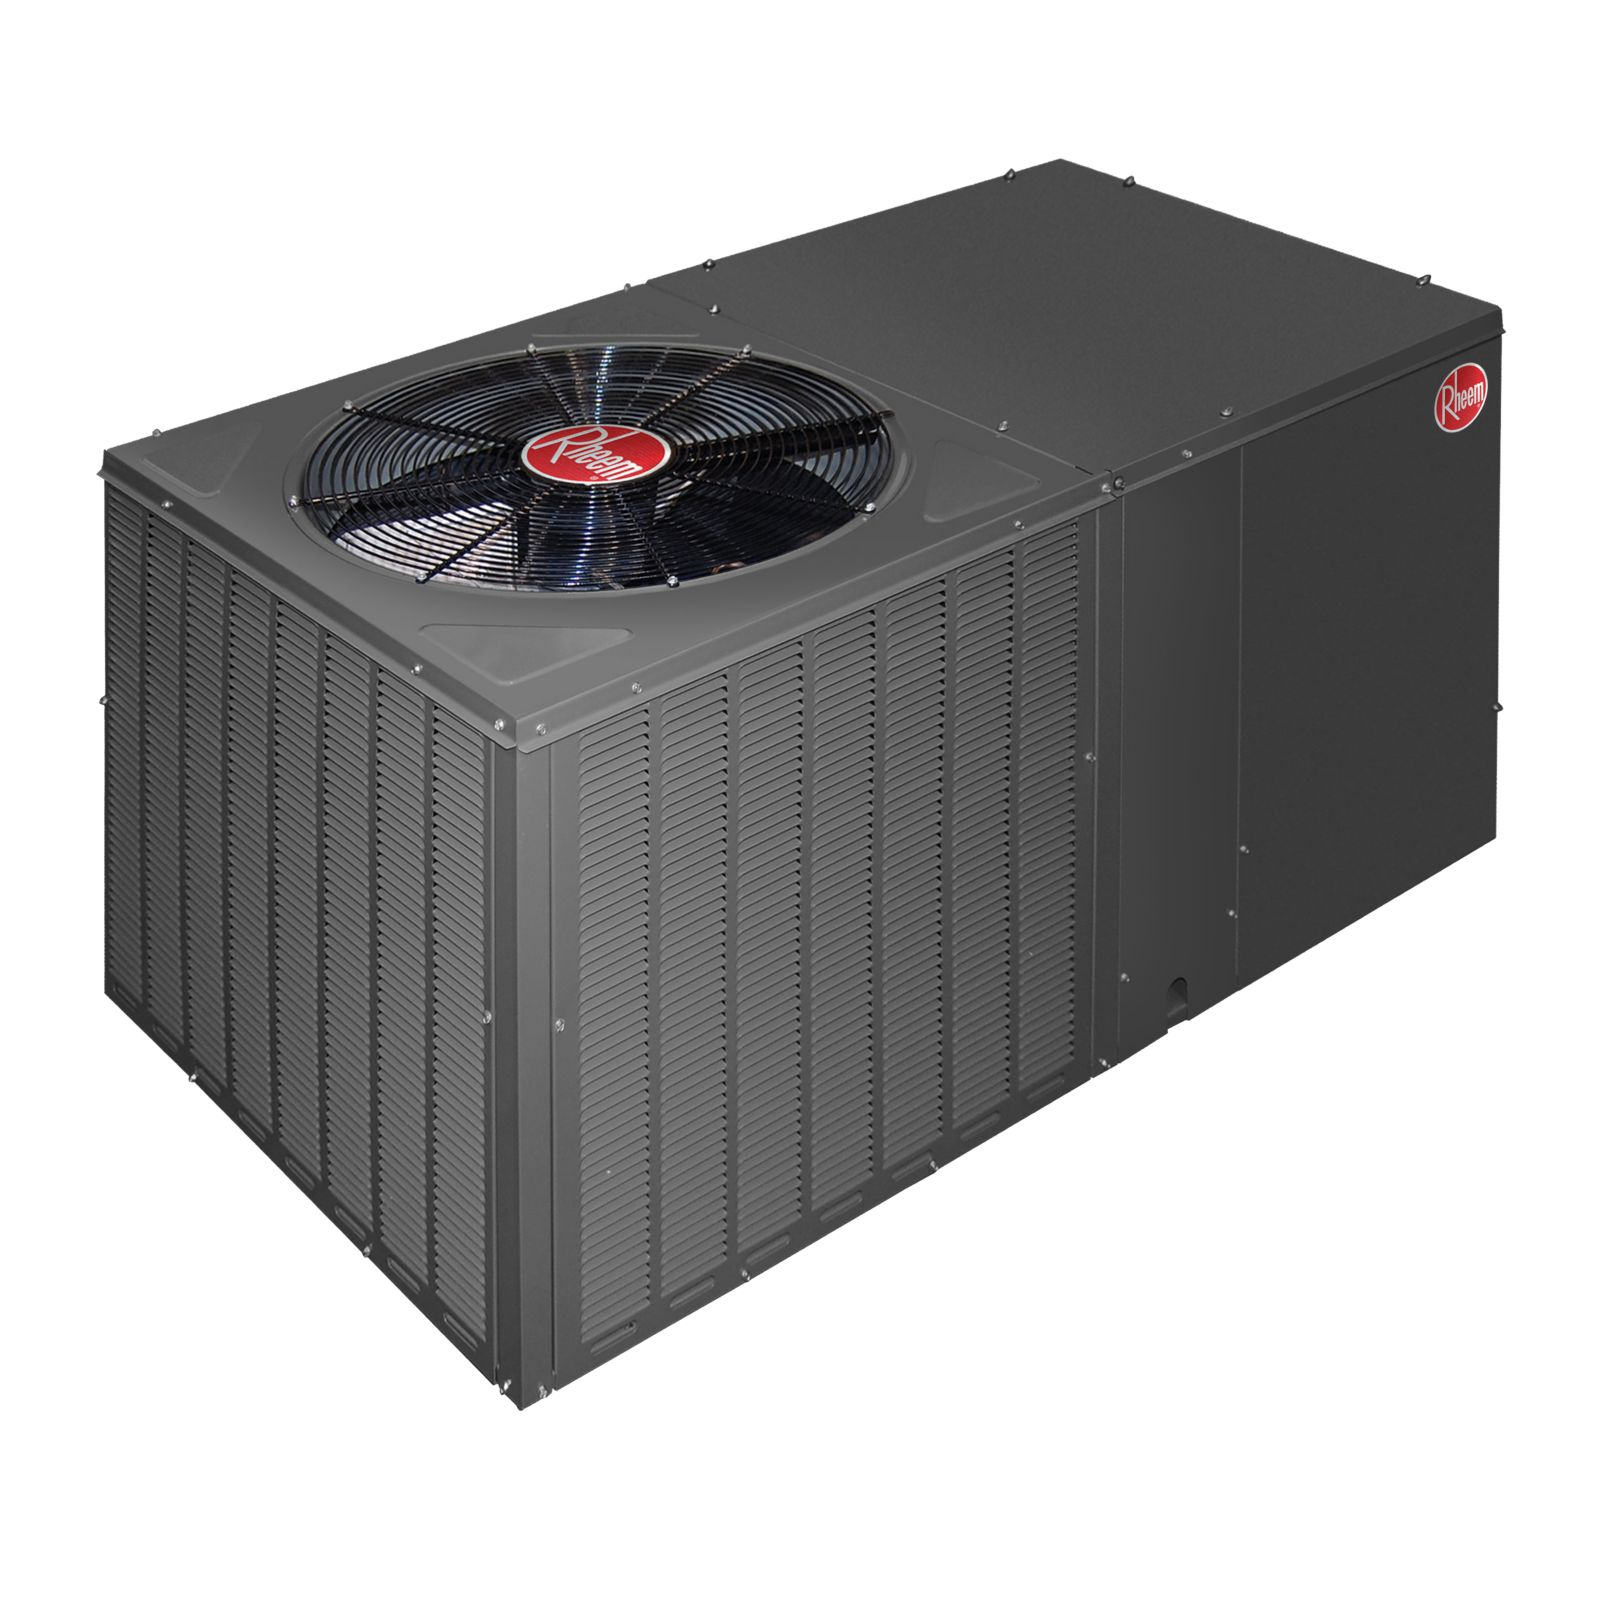 Rheem RSPM-A024JK000 - Classic 2 Ton, 14 SEER, Packaged Air Conditioner - Dedicated Horizontal, 208-230 V, 1 Ph, 60 Hz